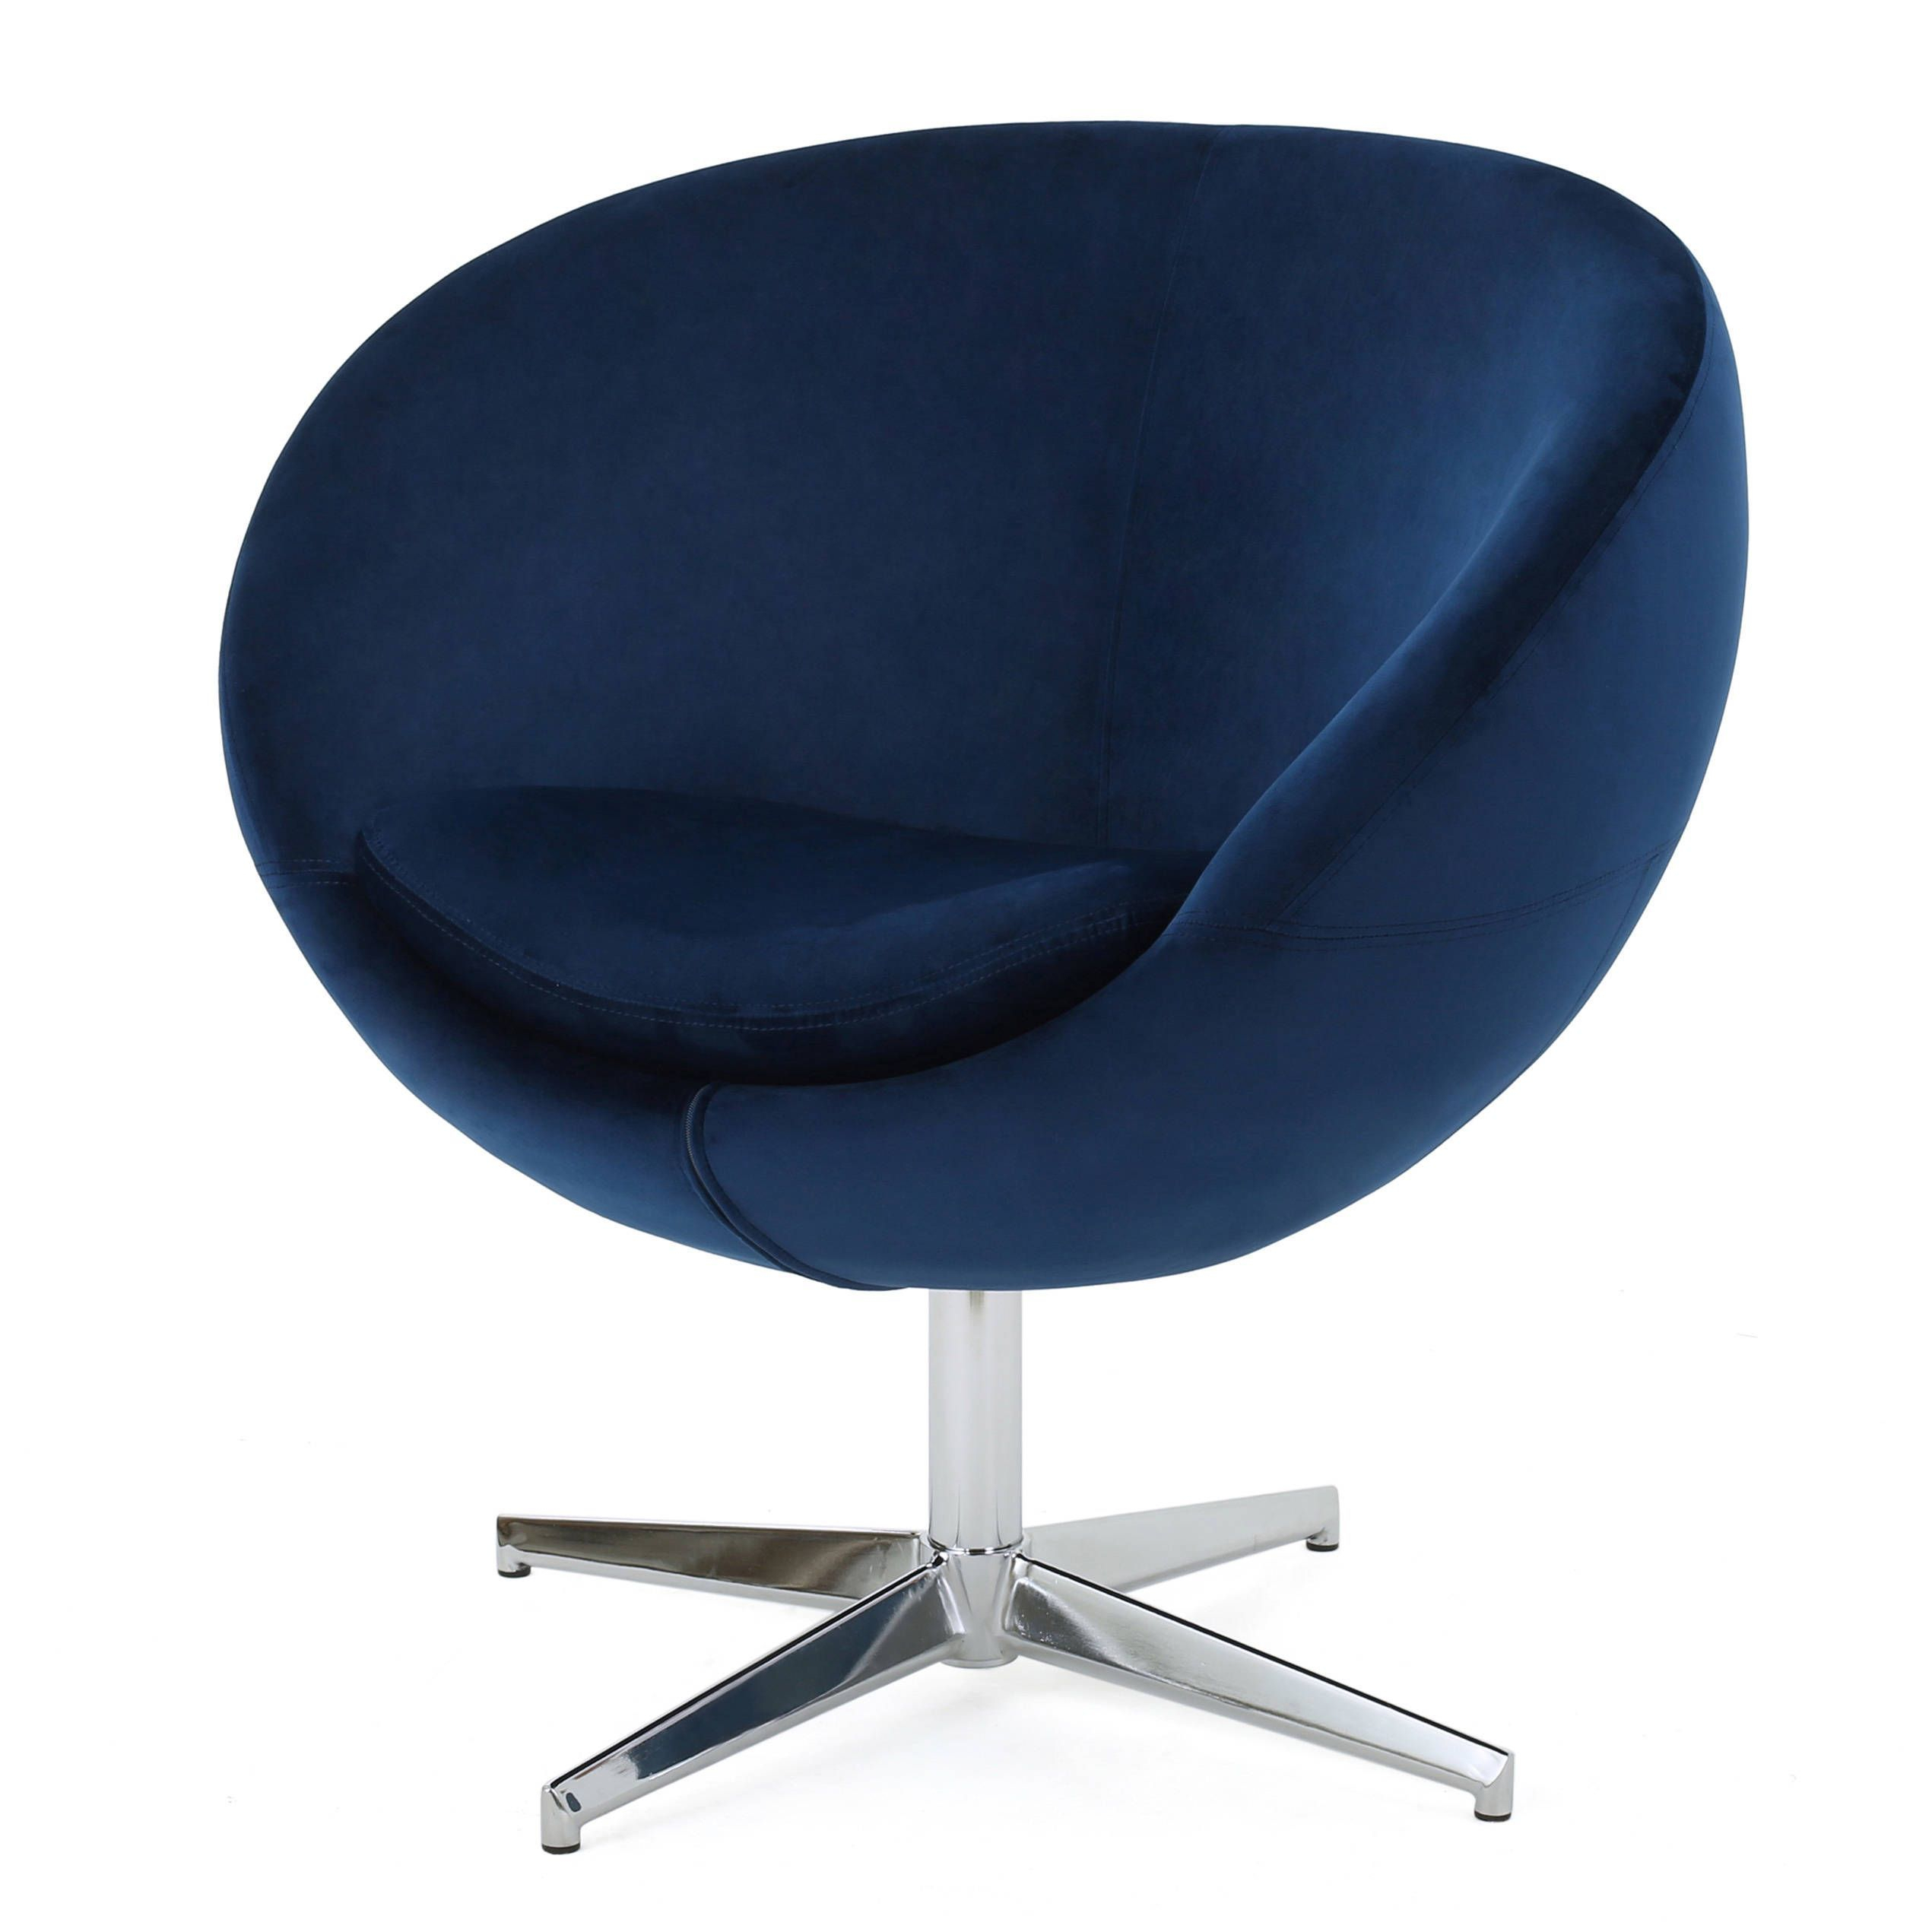 Isla Velvet Fabric Roundback Modern Chairchristopher Knight Home Throughout Chill Swivel Chairs With Metal Base (Photo 2 of 20)